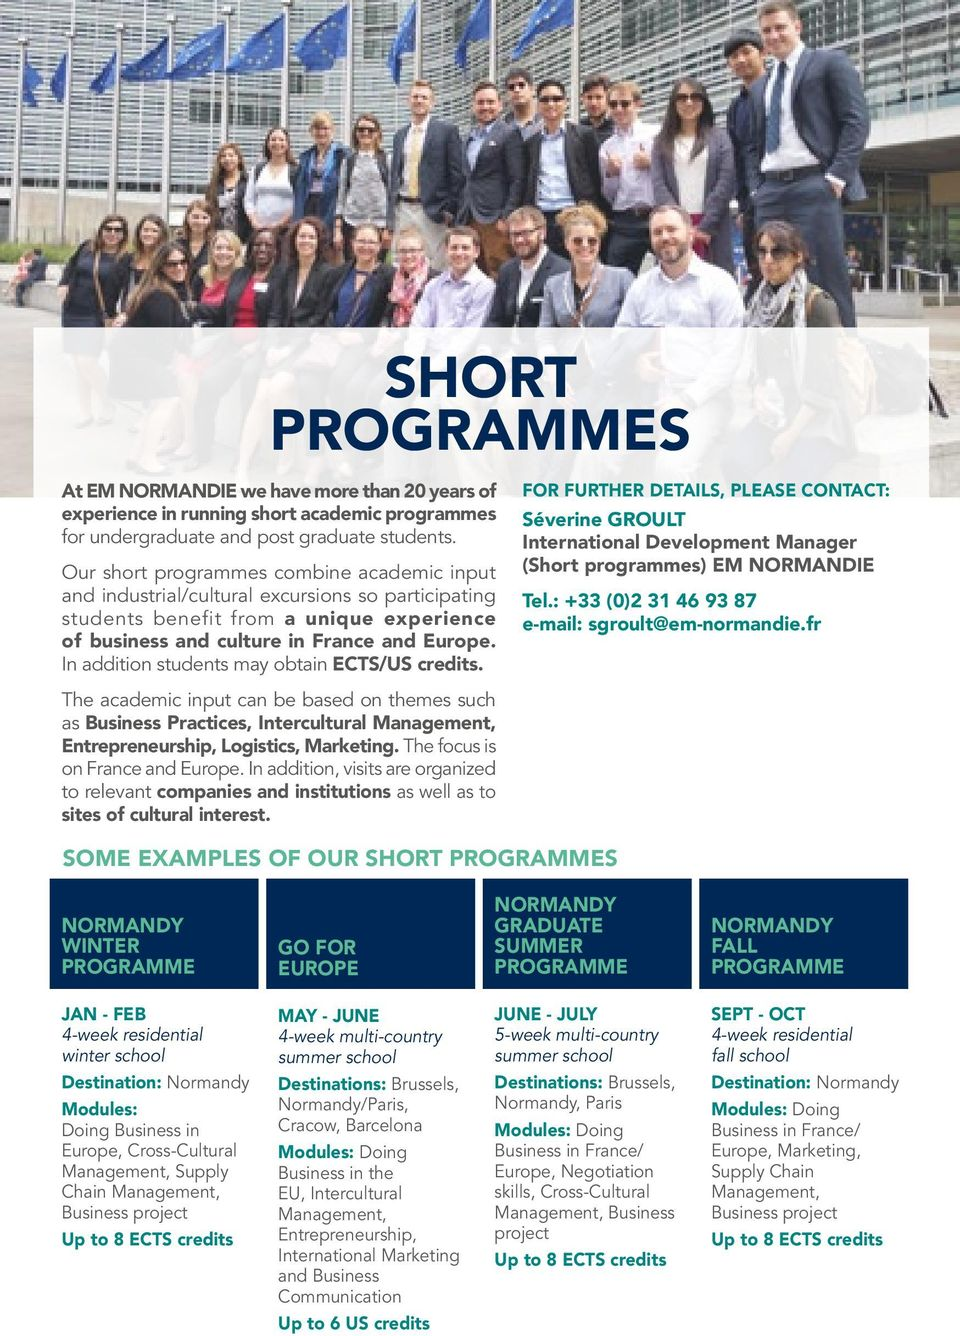 In addition students may obtain ECTS/US credits. FOR FURTHER DETAILS, PLEASE CONTACT: Séverine GROULT International Development Manager (Short programmes) EM NORMANDIE Tel.